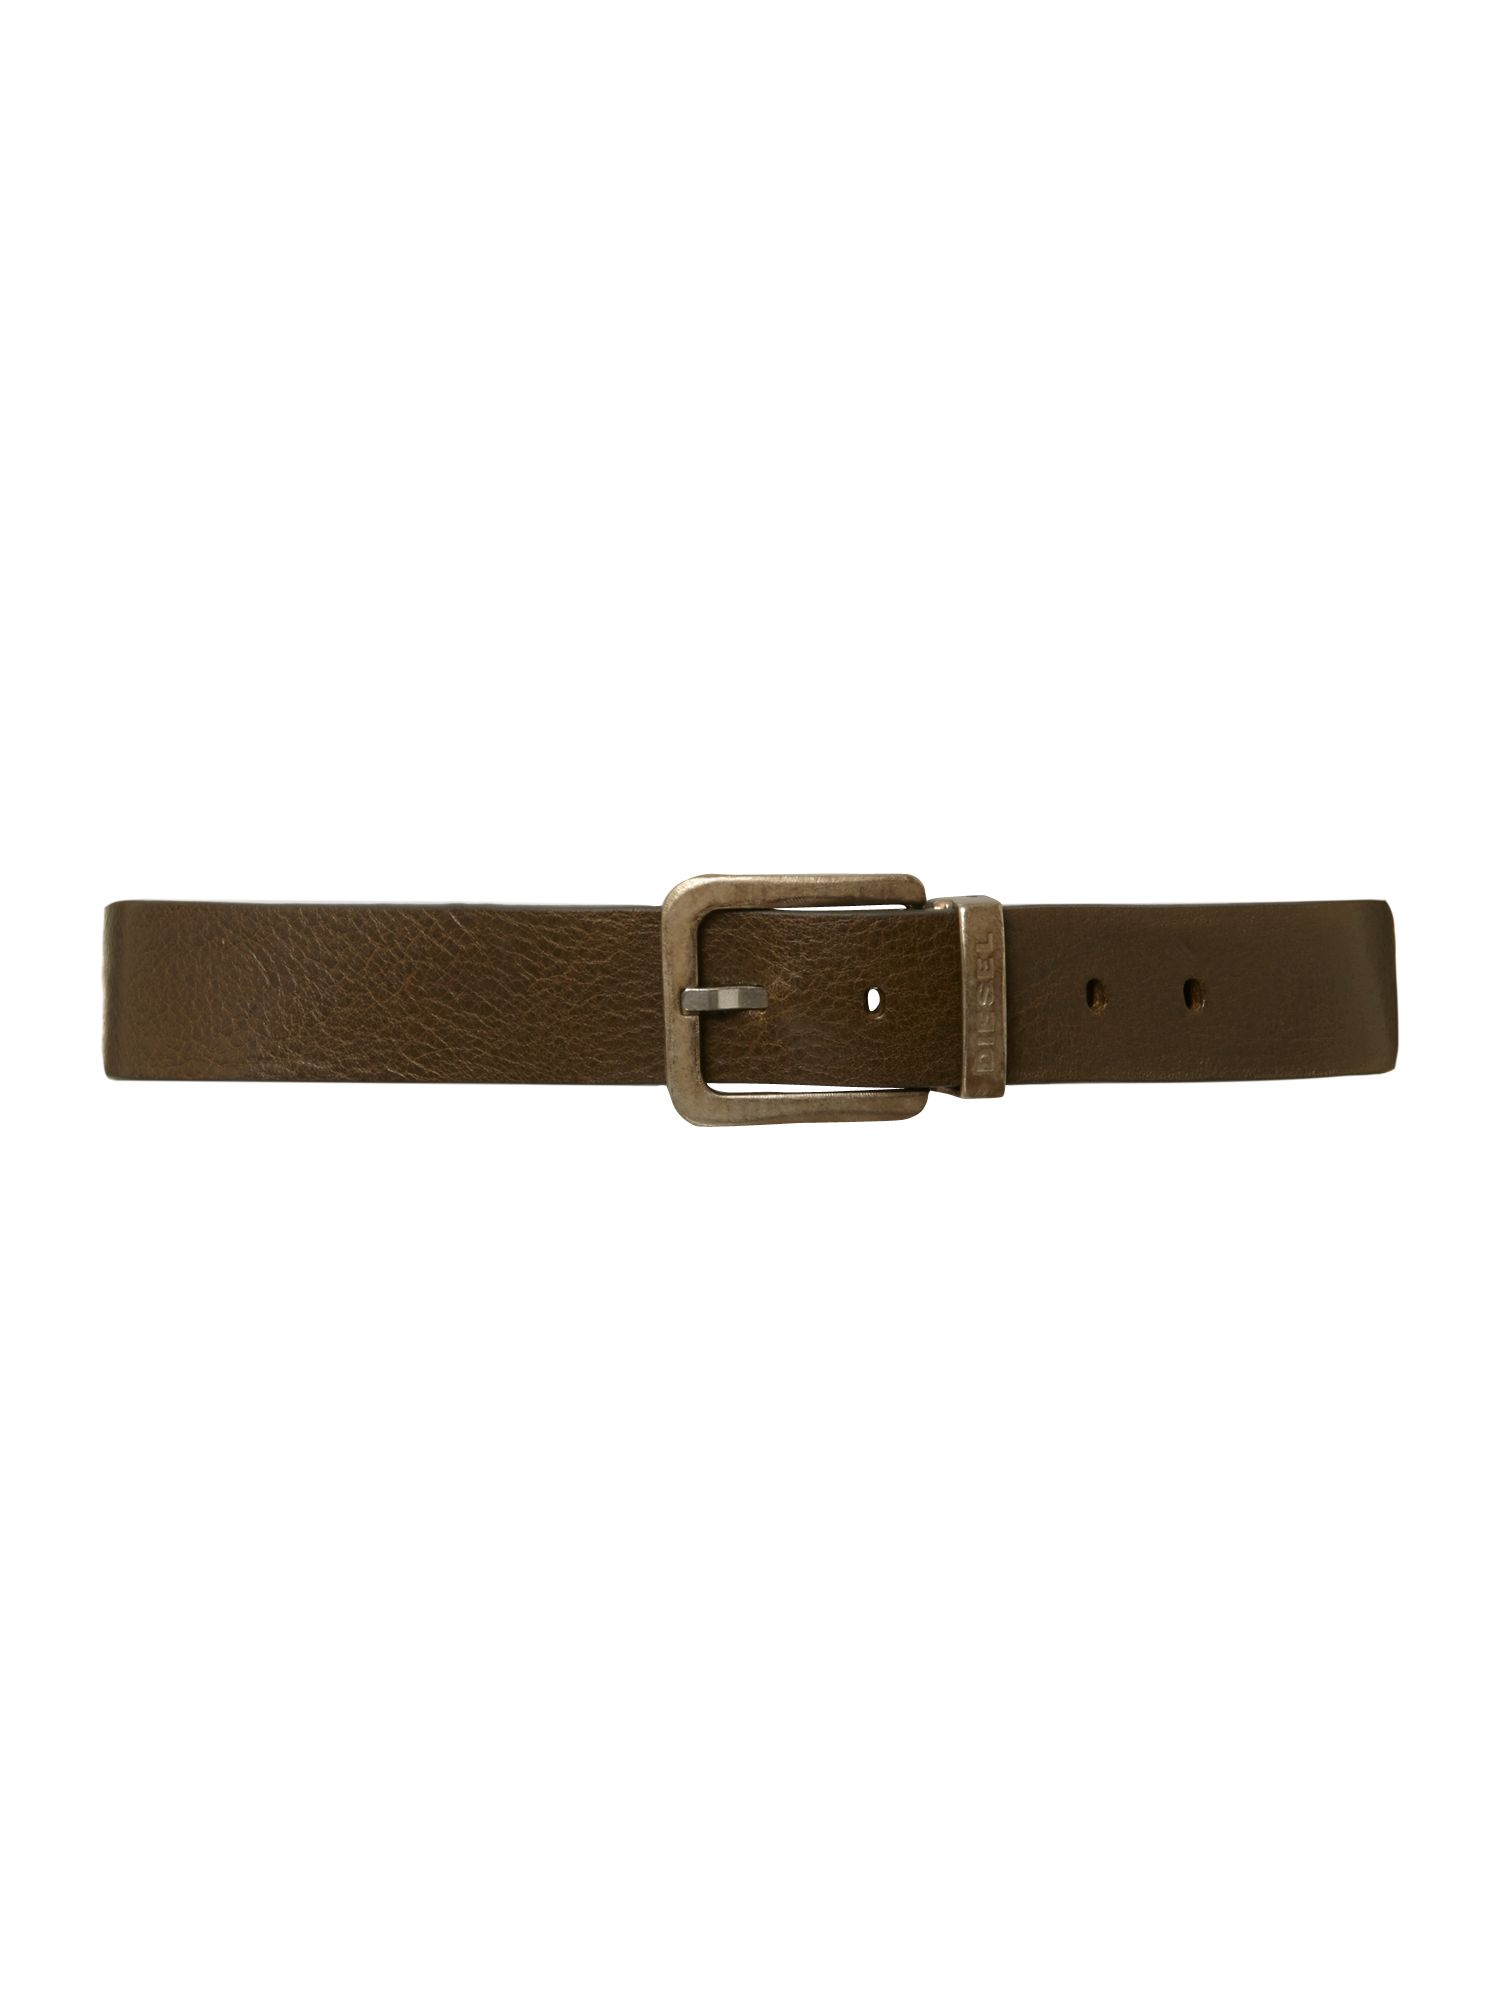 Begles belt